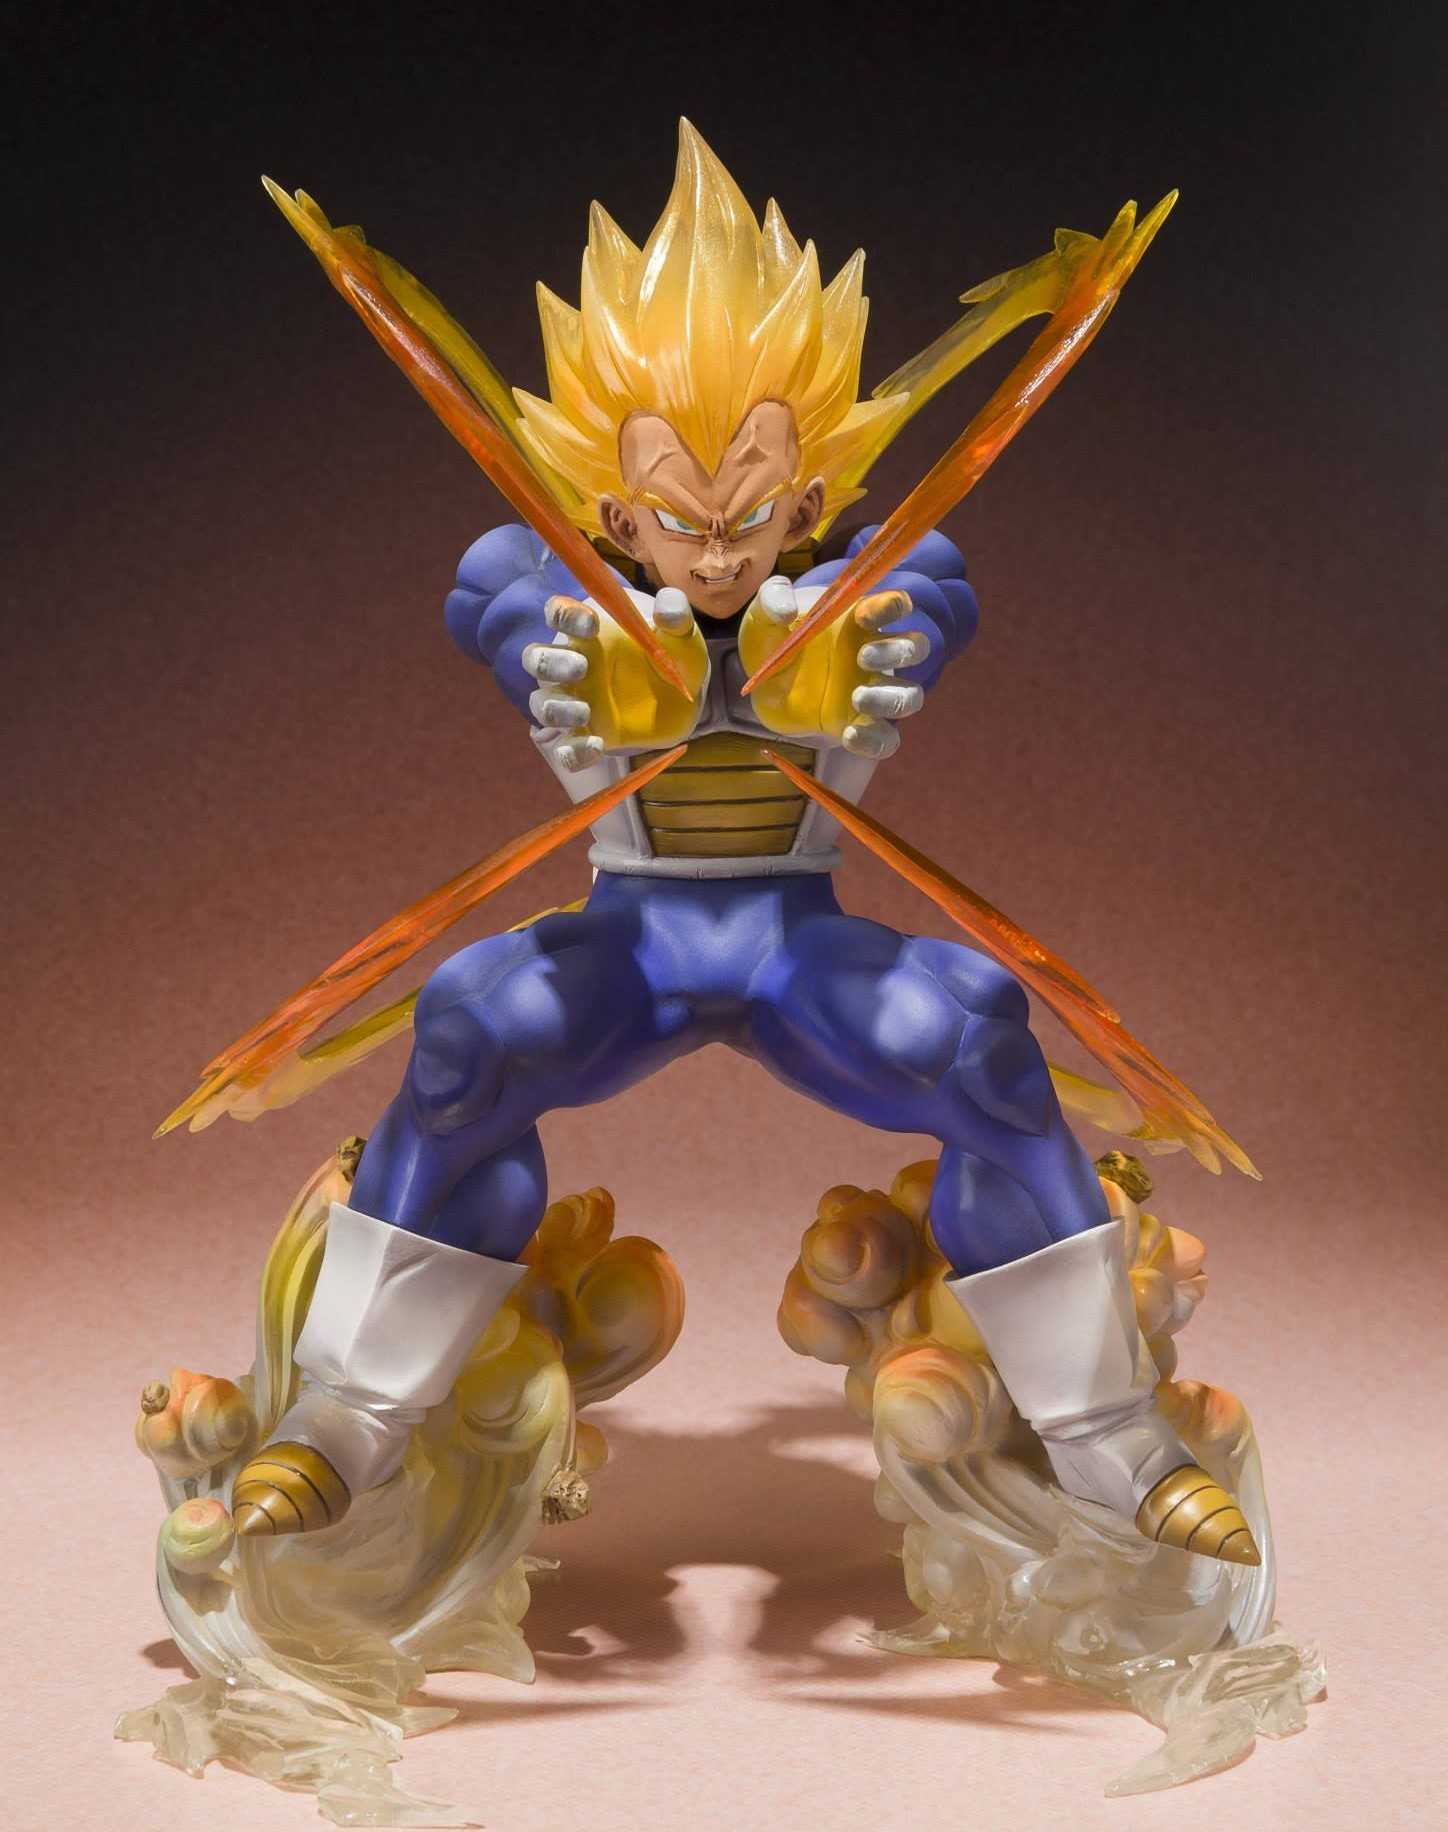 figuarts zero dragonball figures toys gashapons collectibles forum dragon ball figures db dbz dbgt. Black Bedroom Furniture Sets. Home Design Ideas